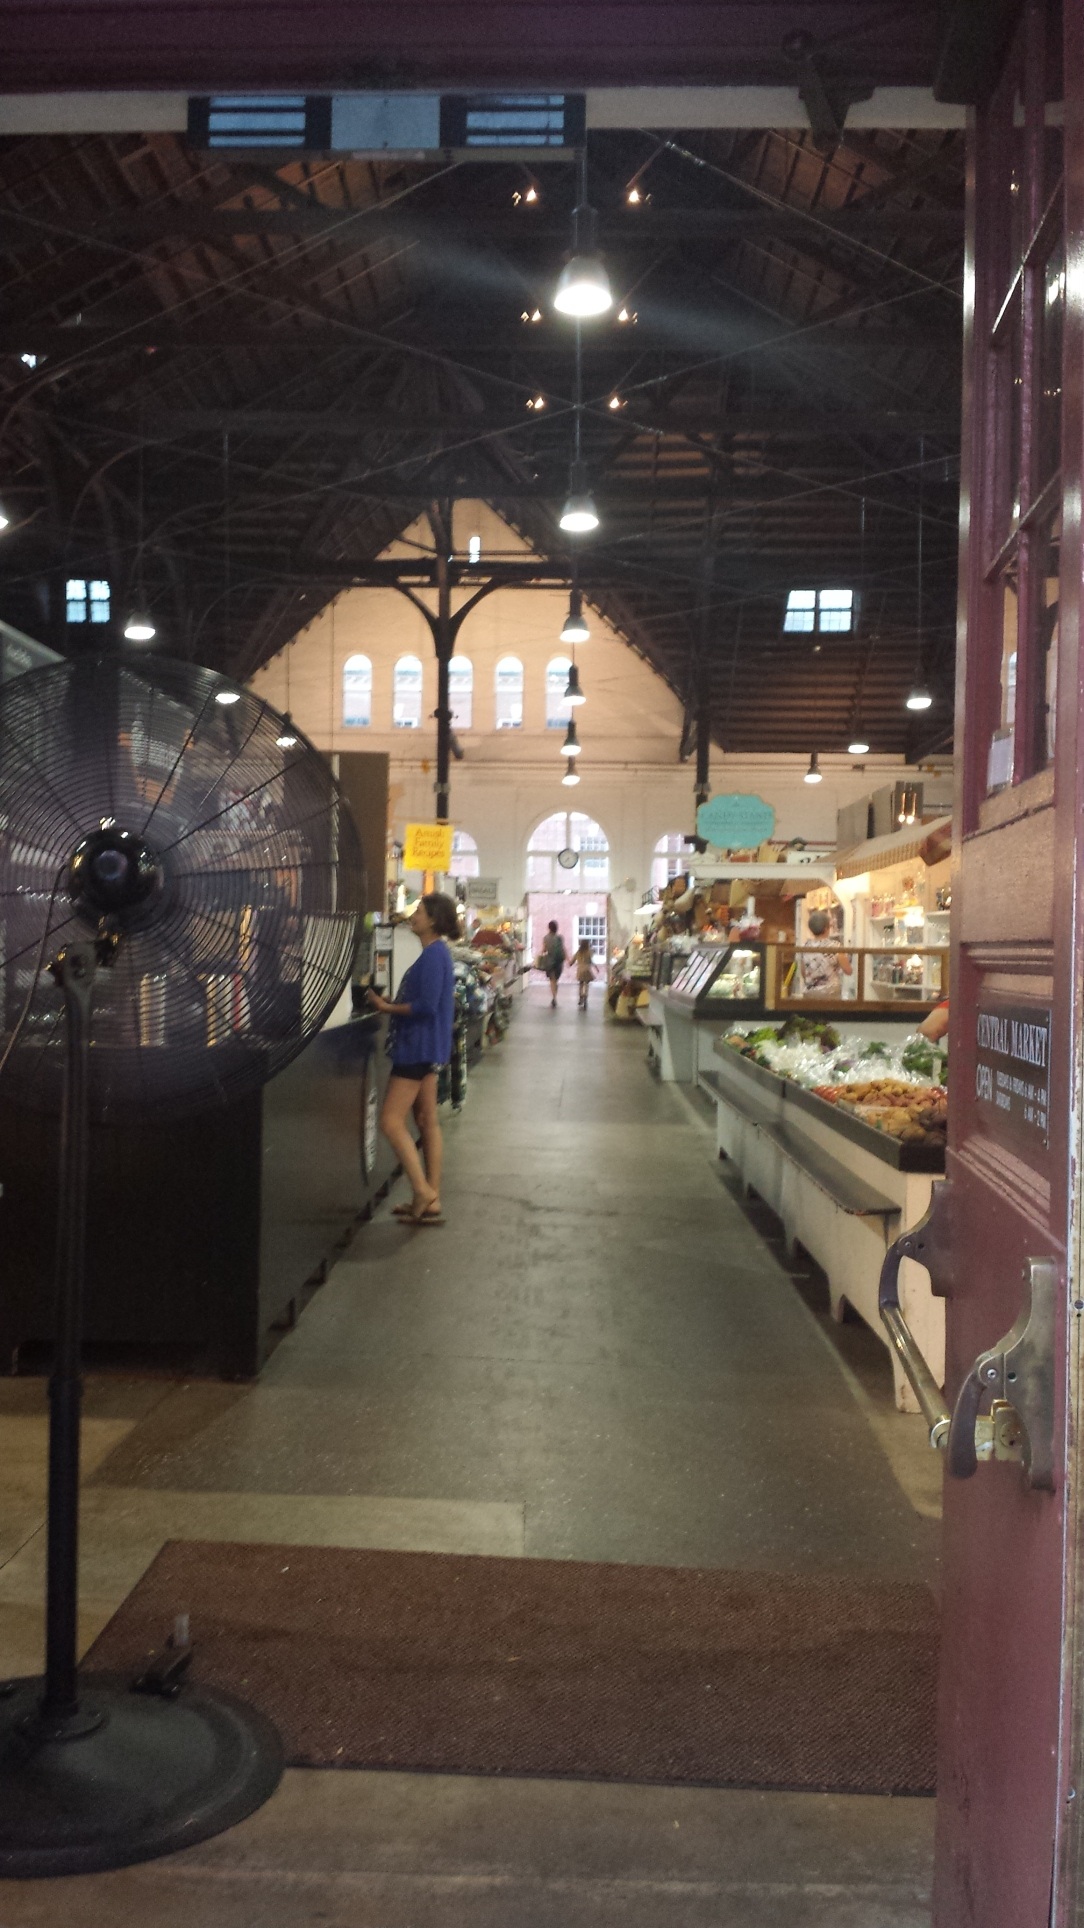 From this angle you could see what an impressively sized building the Central Market is.